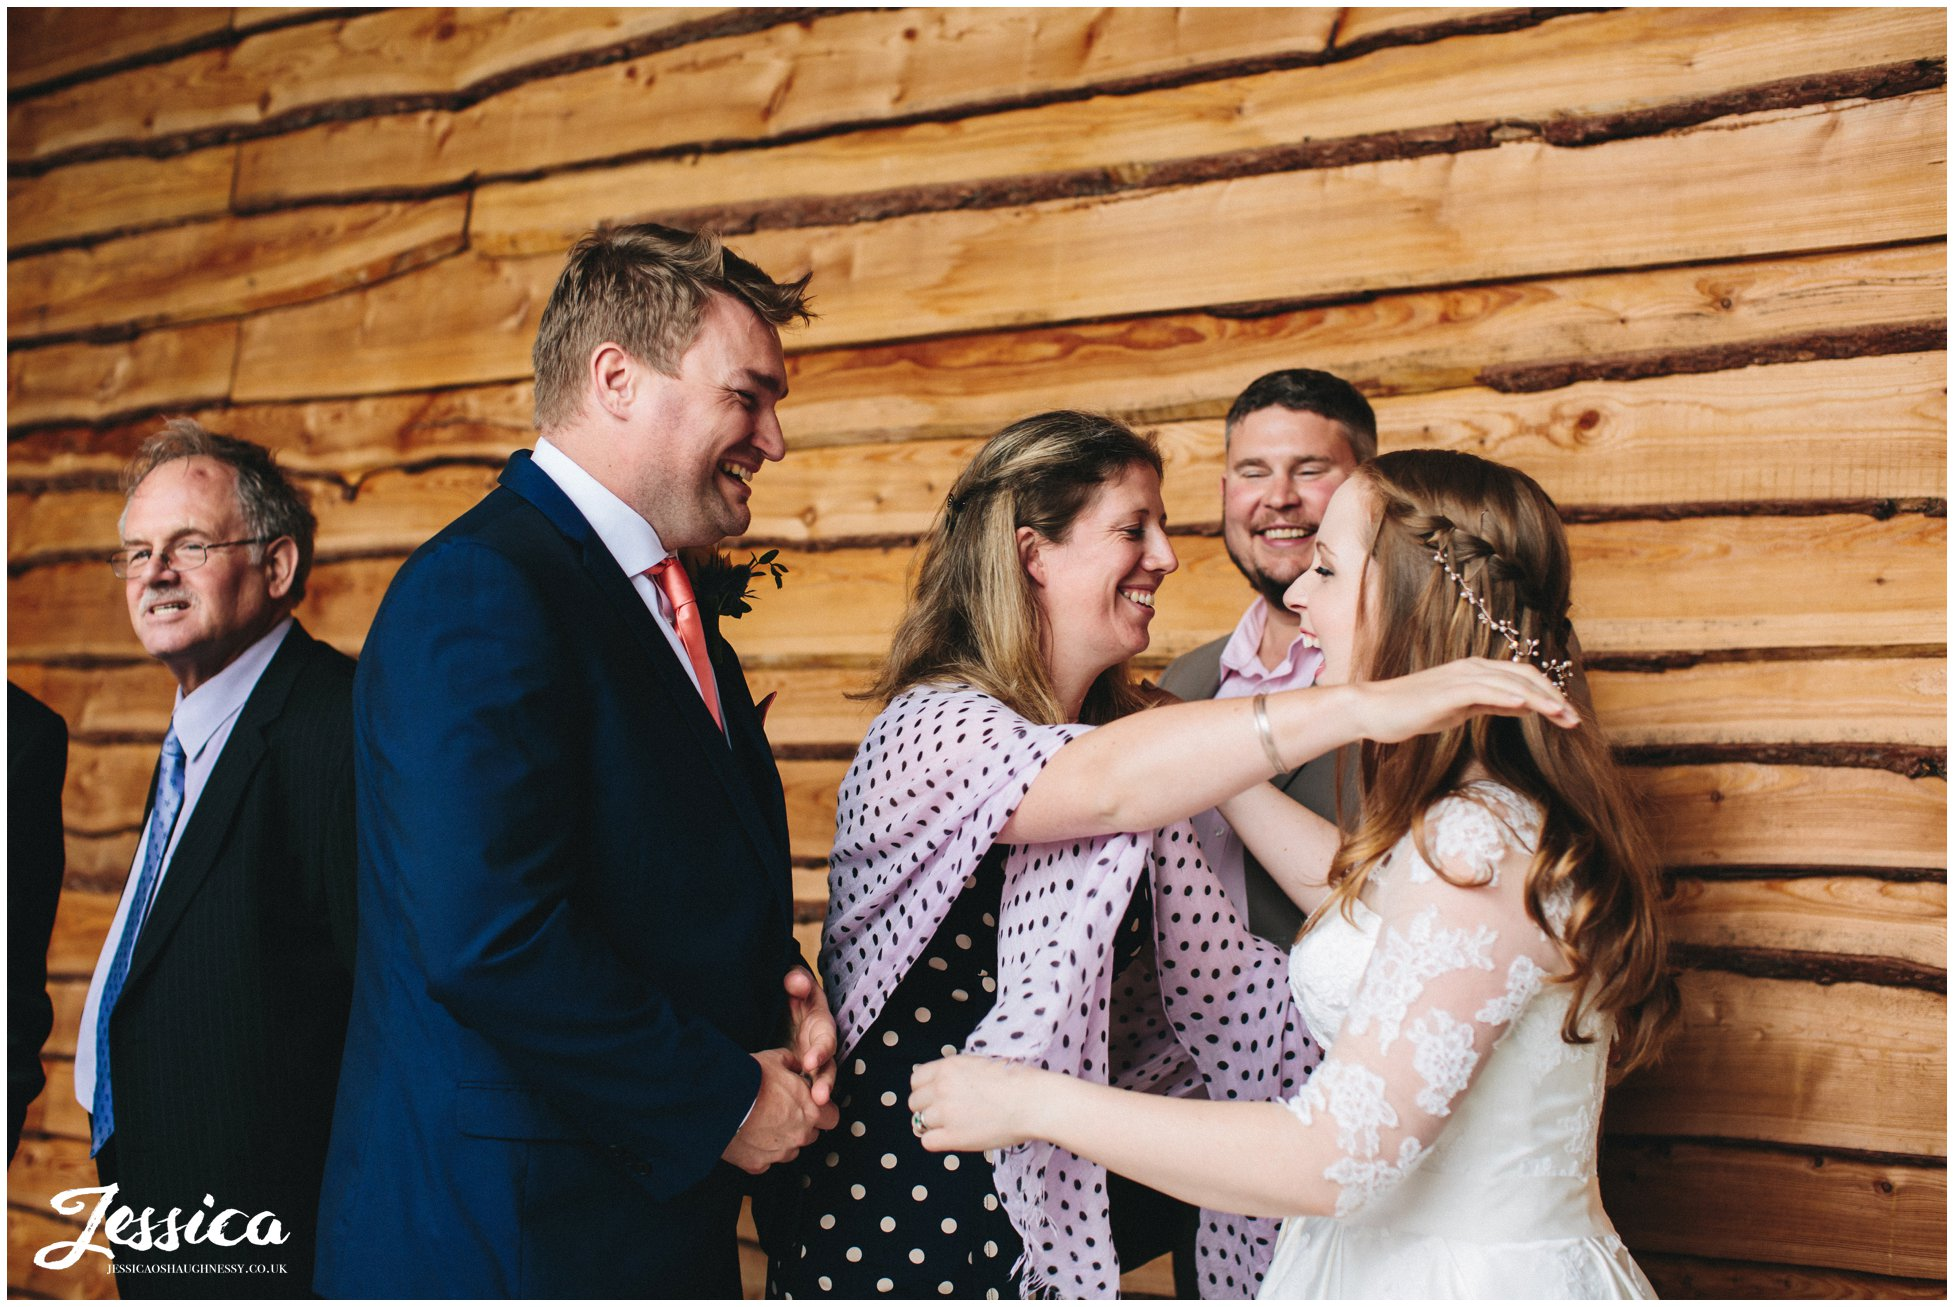 guests hug newly wed's after their north wales wedding ceremony